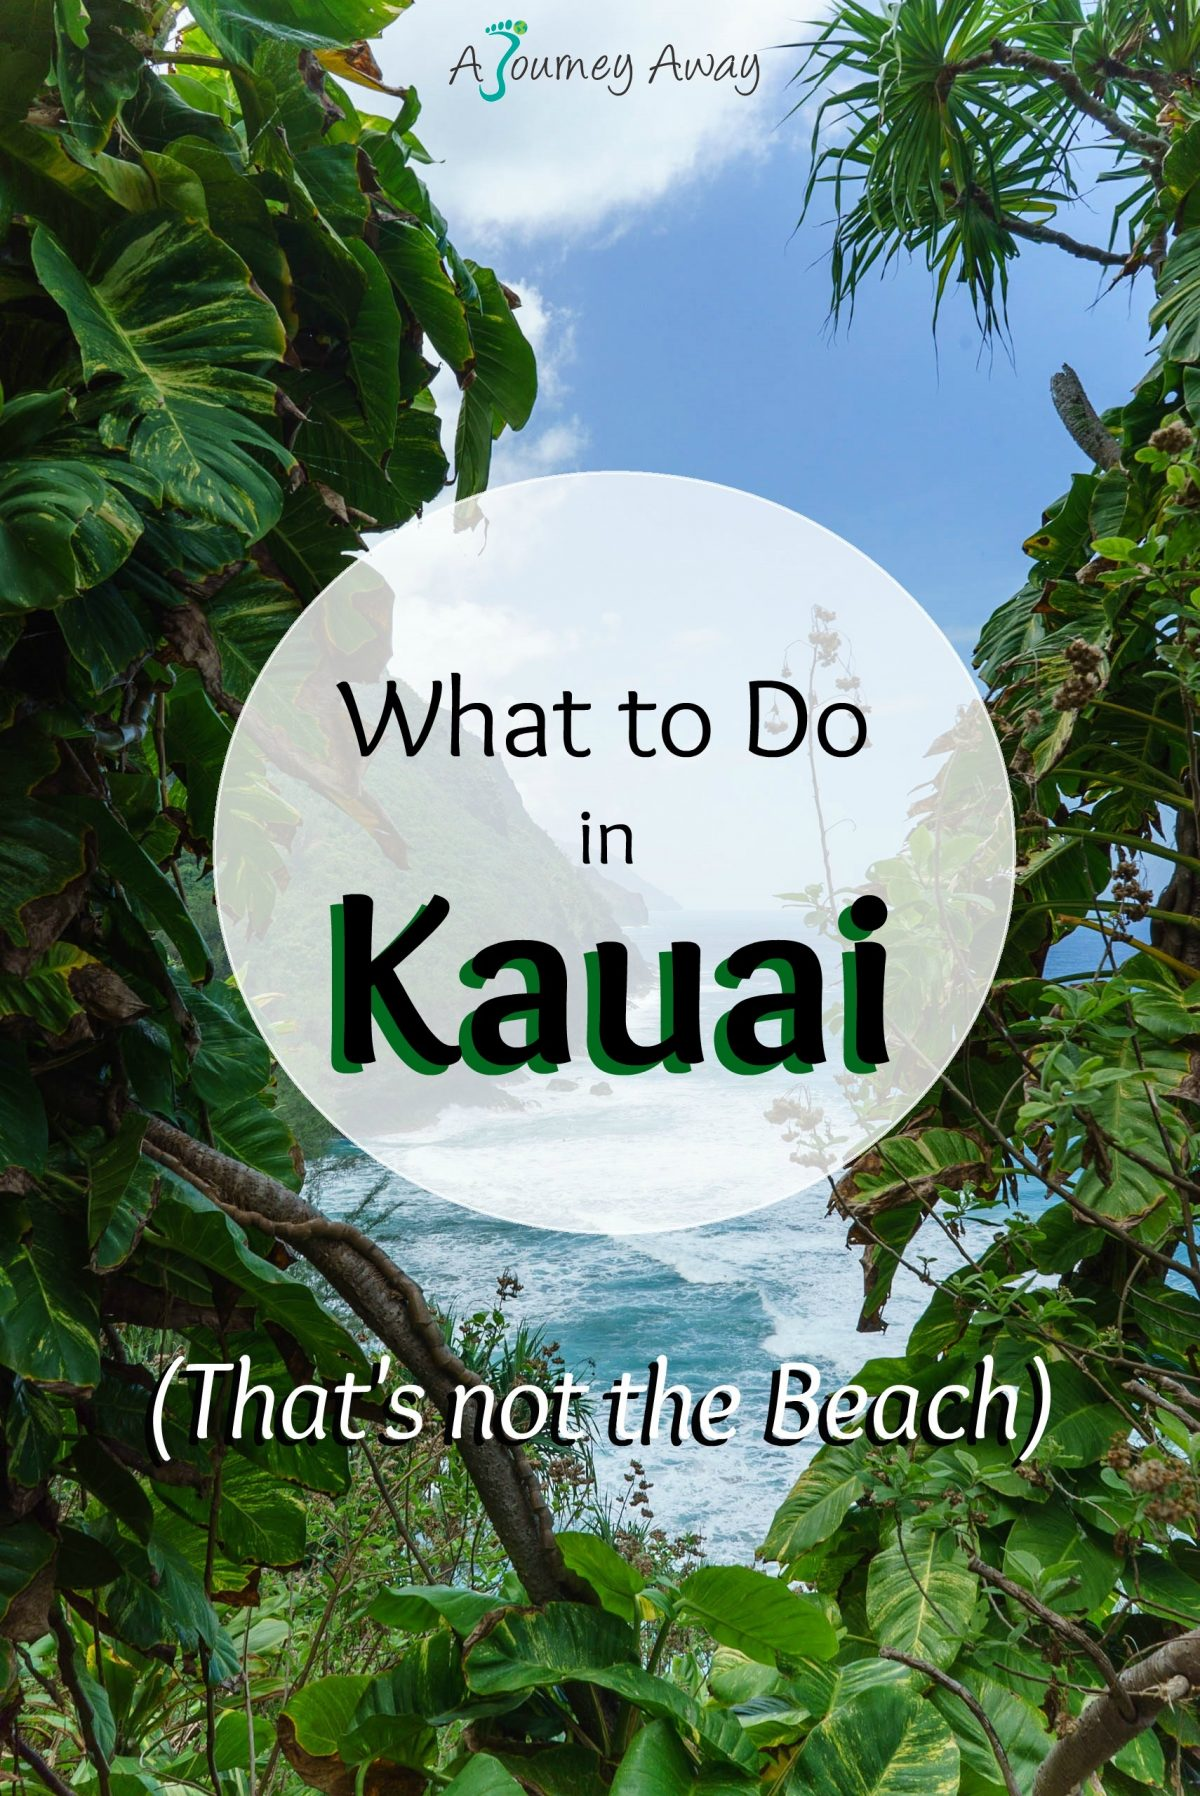 What to do in Kauai, Hawaii (that's not the beach) | A Journey Away travel blog